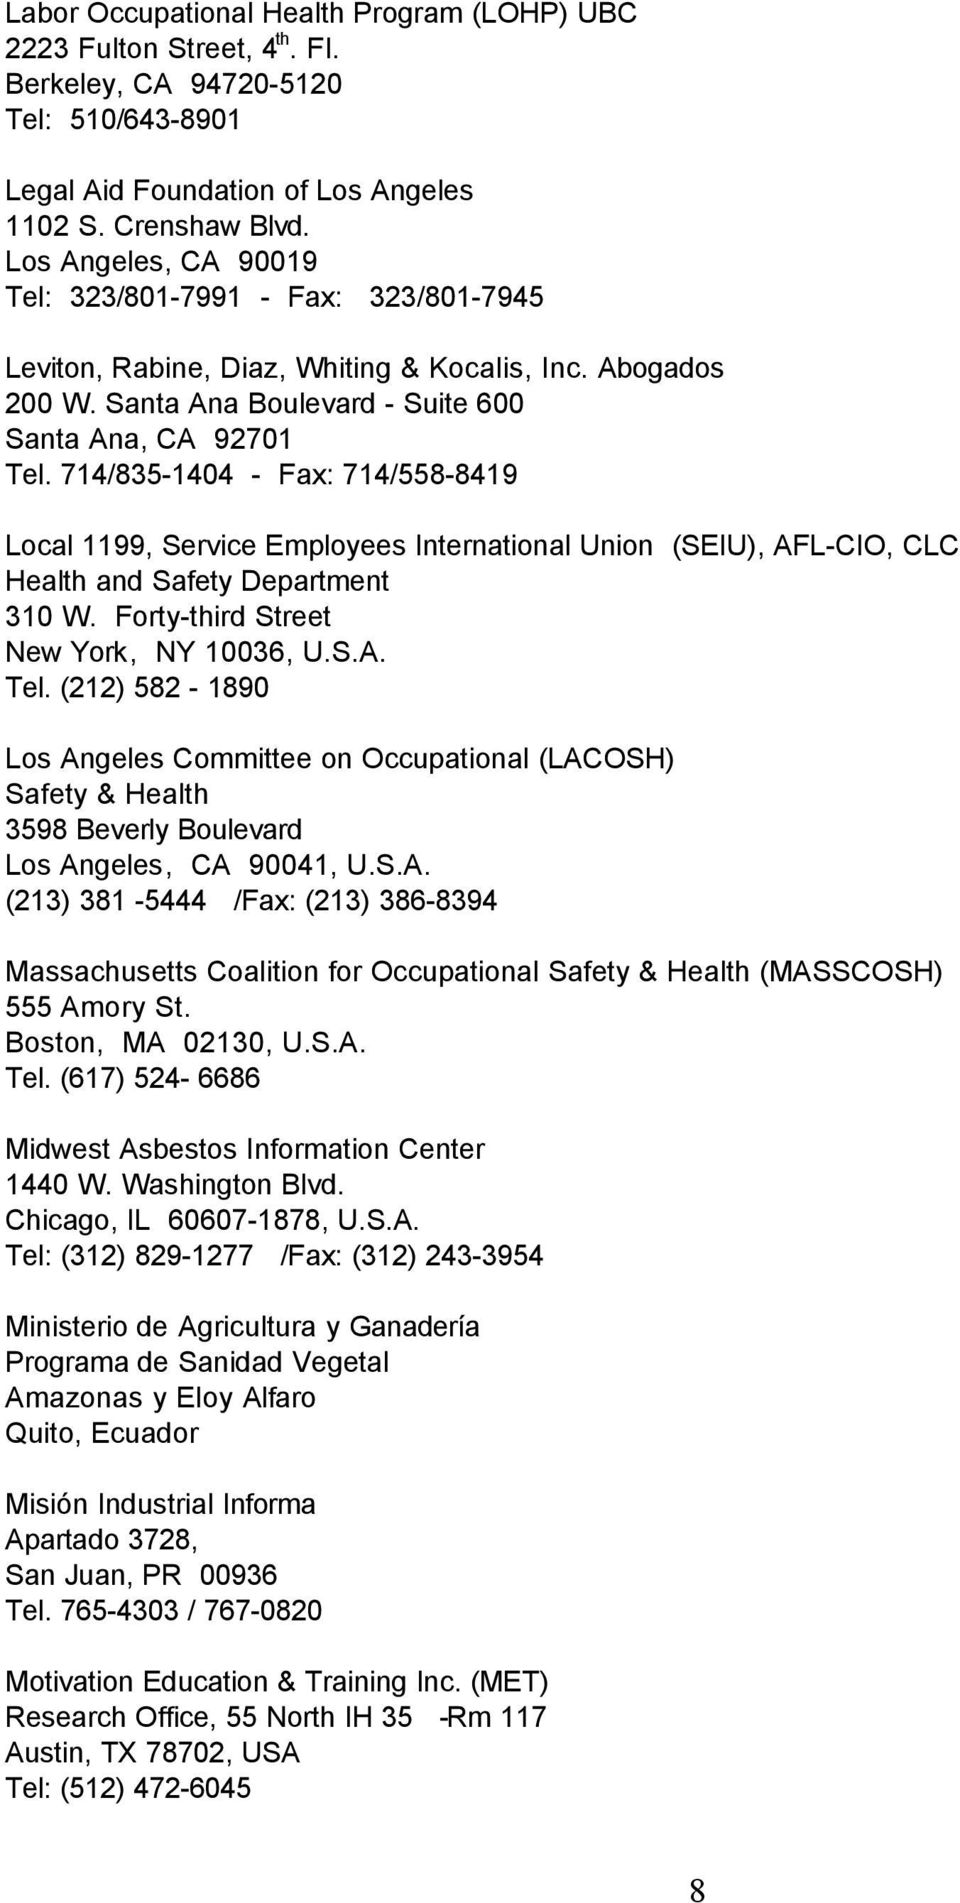 714/835-1404 - Fax: 714/558-8419 Local 1199, Service Employees International Union (SEIU), AFL-CIO, CLC Health and Safety Department 310 W. Forty-third Street New York, NY 10036, U.S.A. Tel.